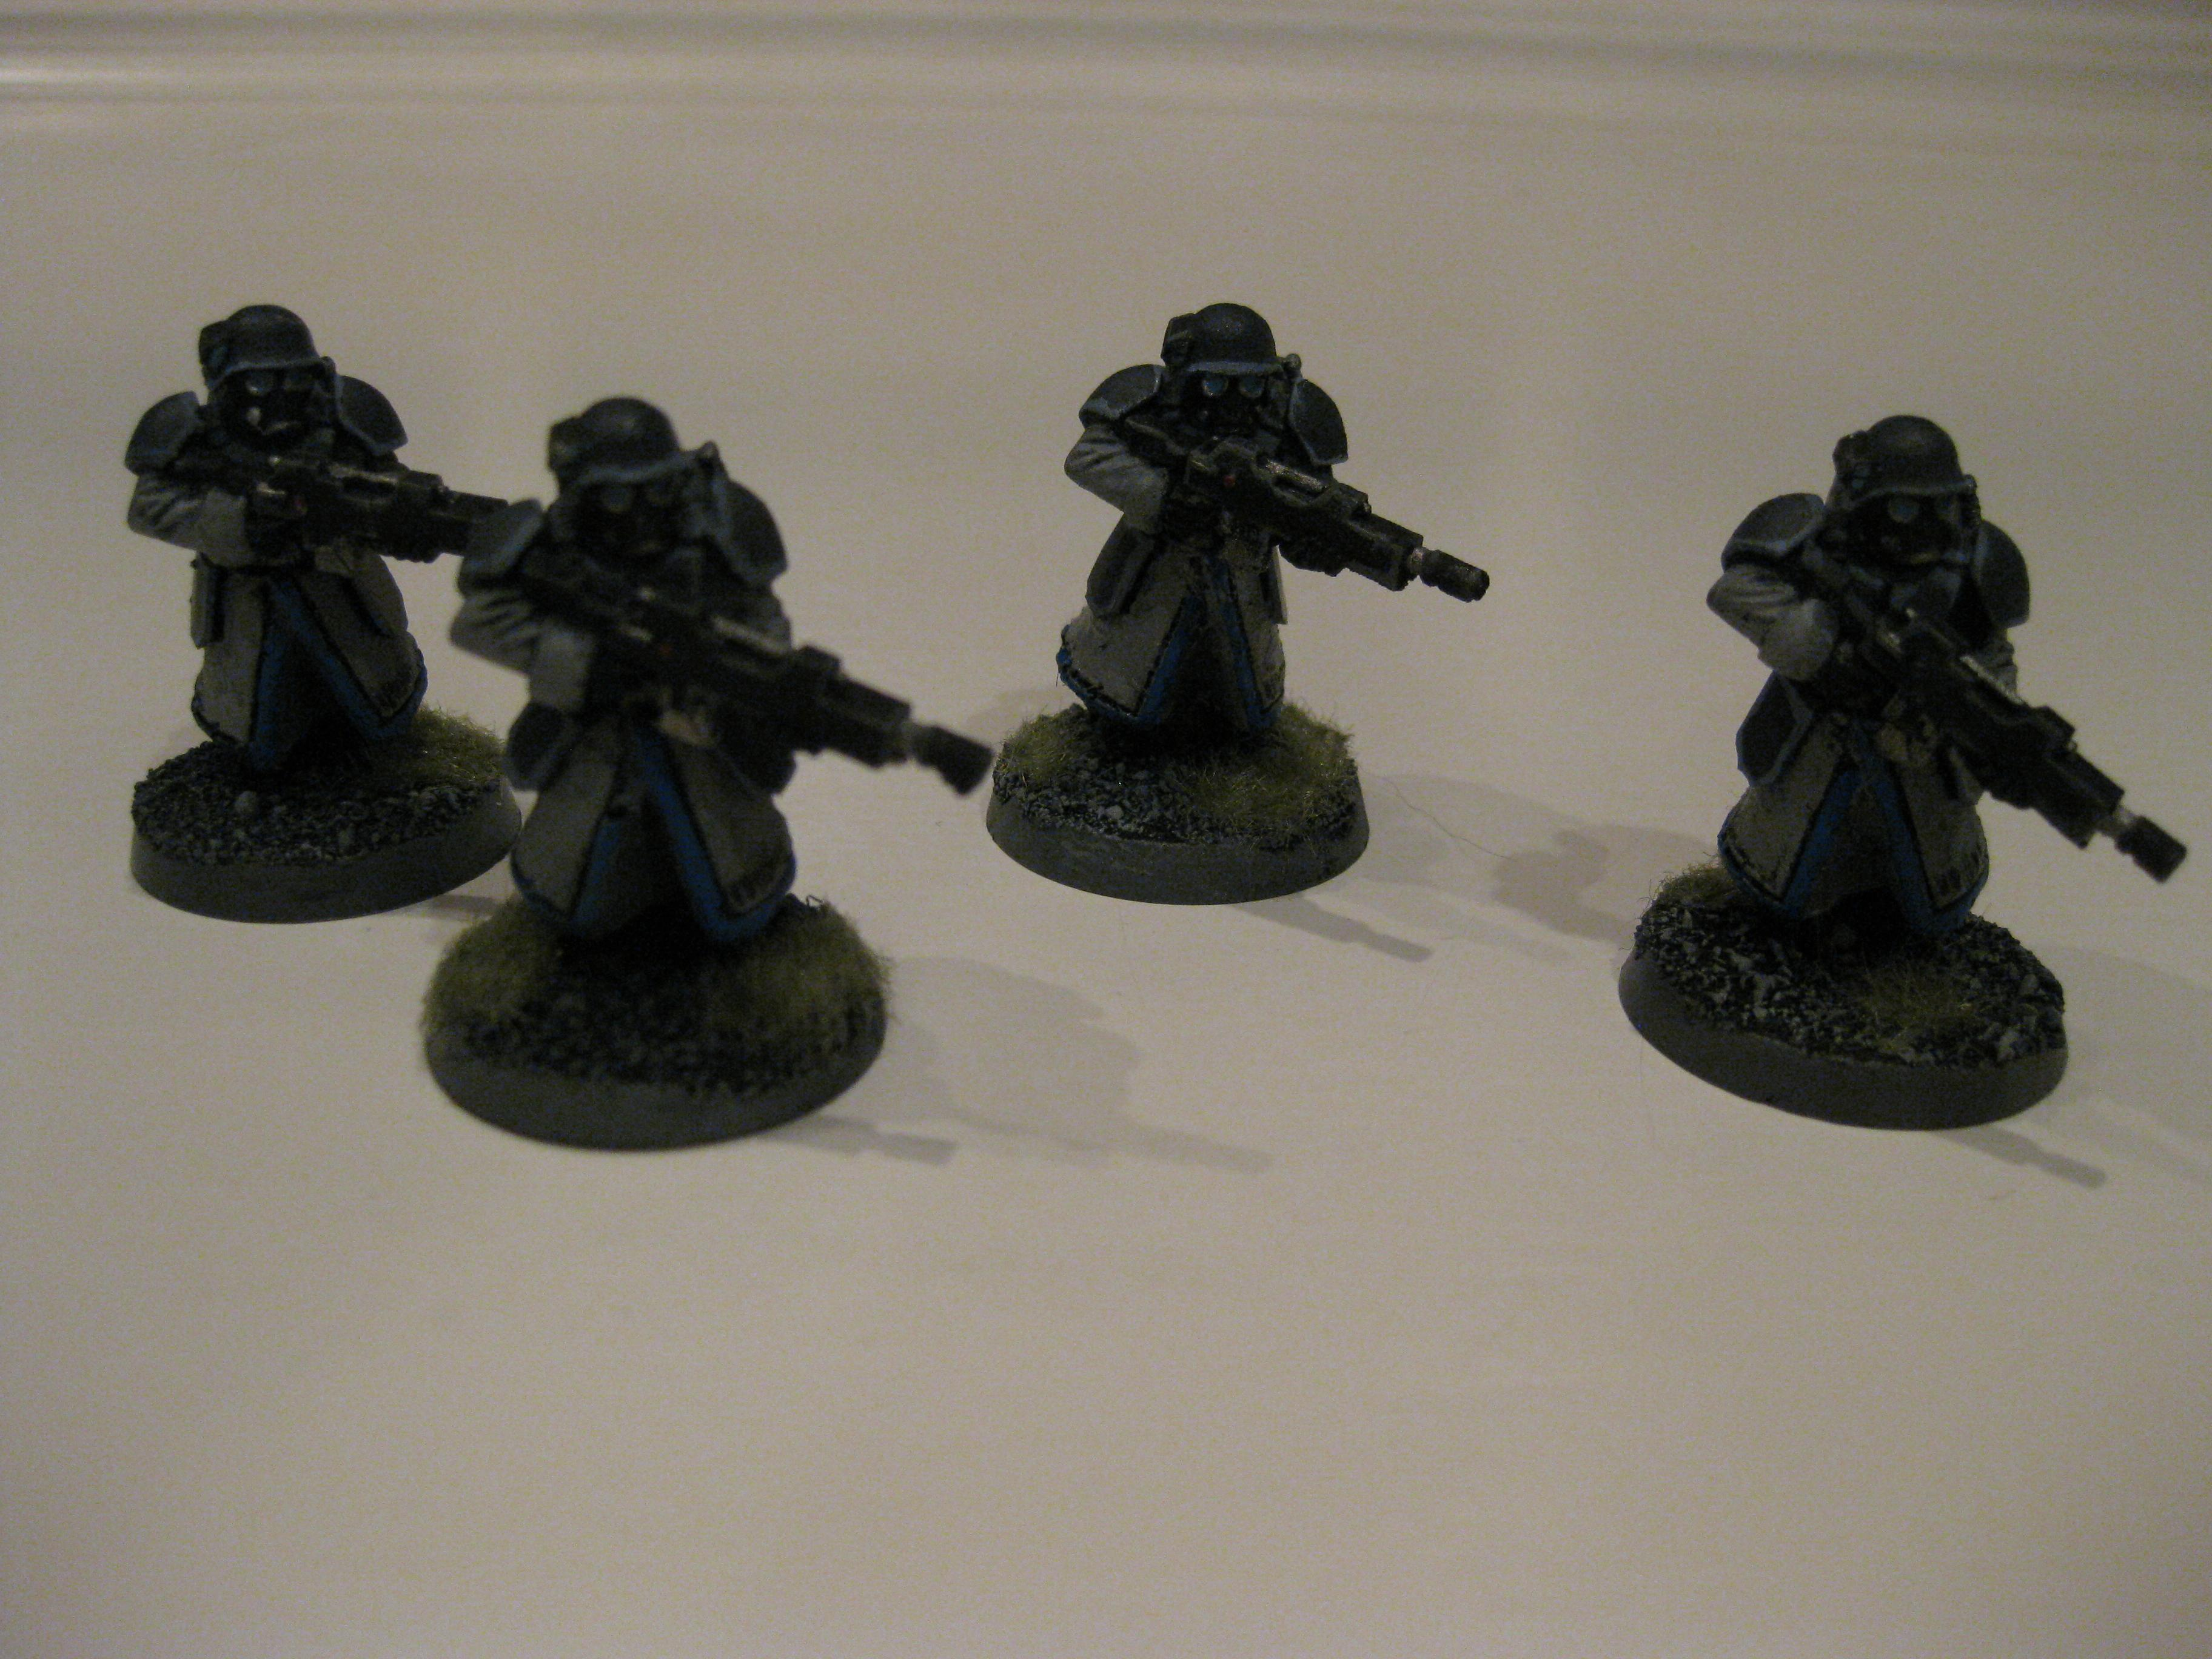 Greatcoat, Imperial Guard, Infantry, Warhammer 40,000